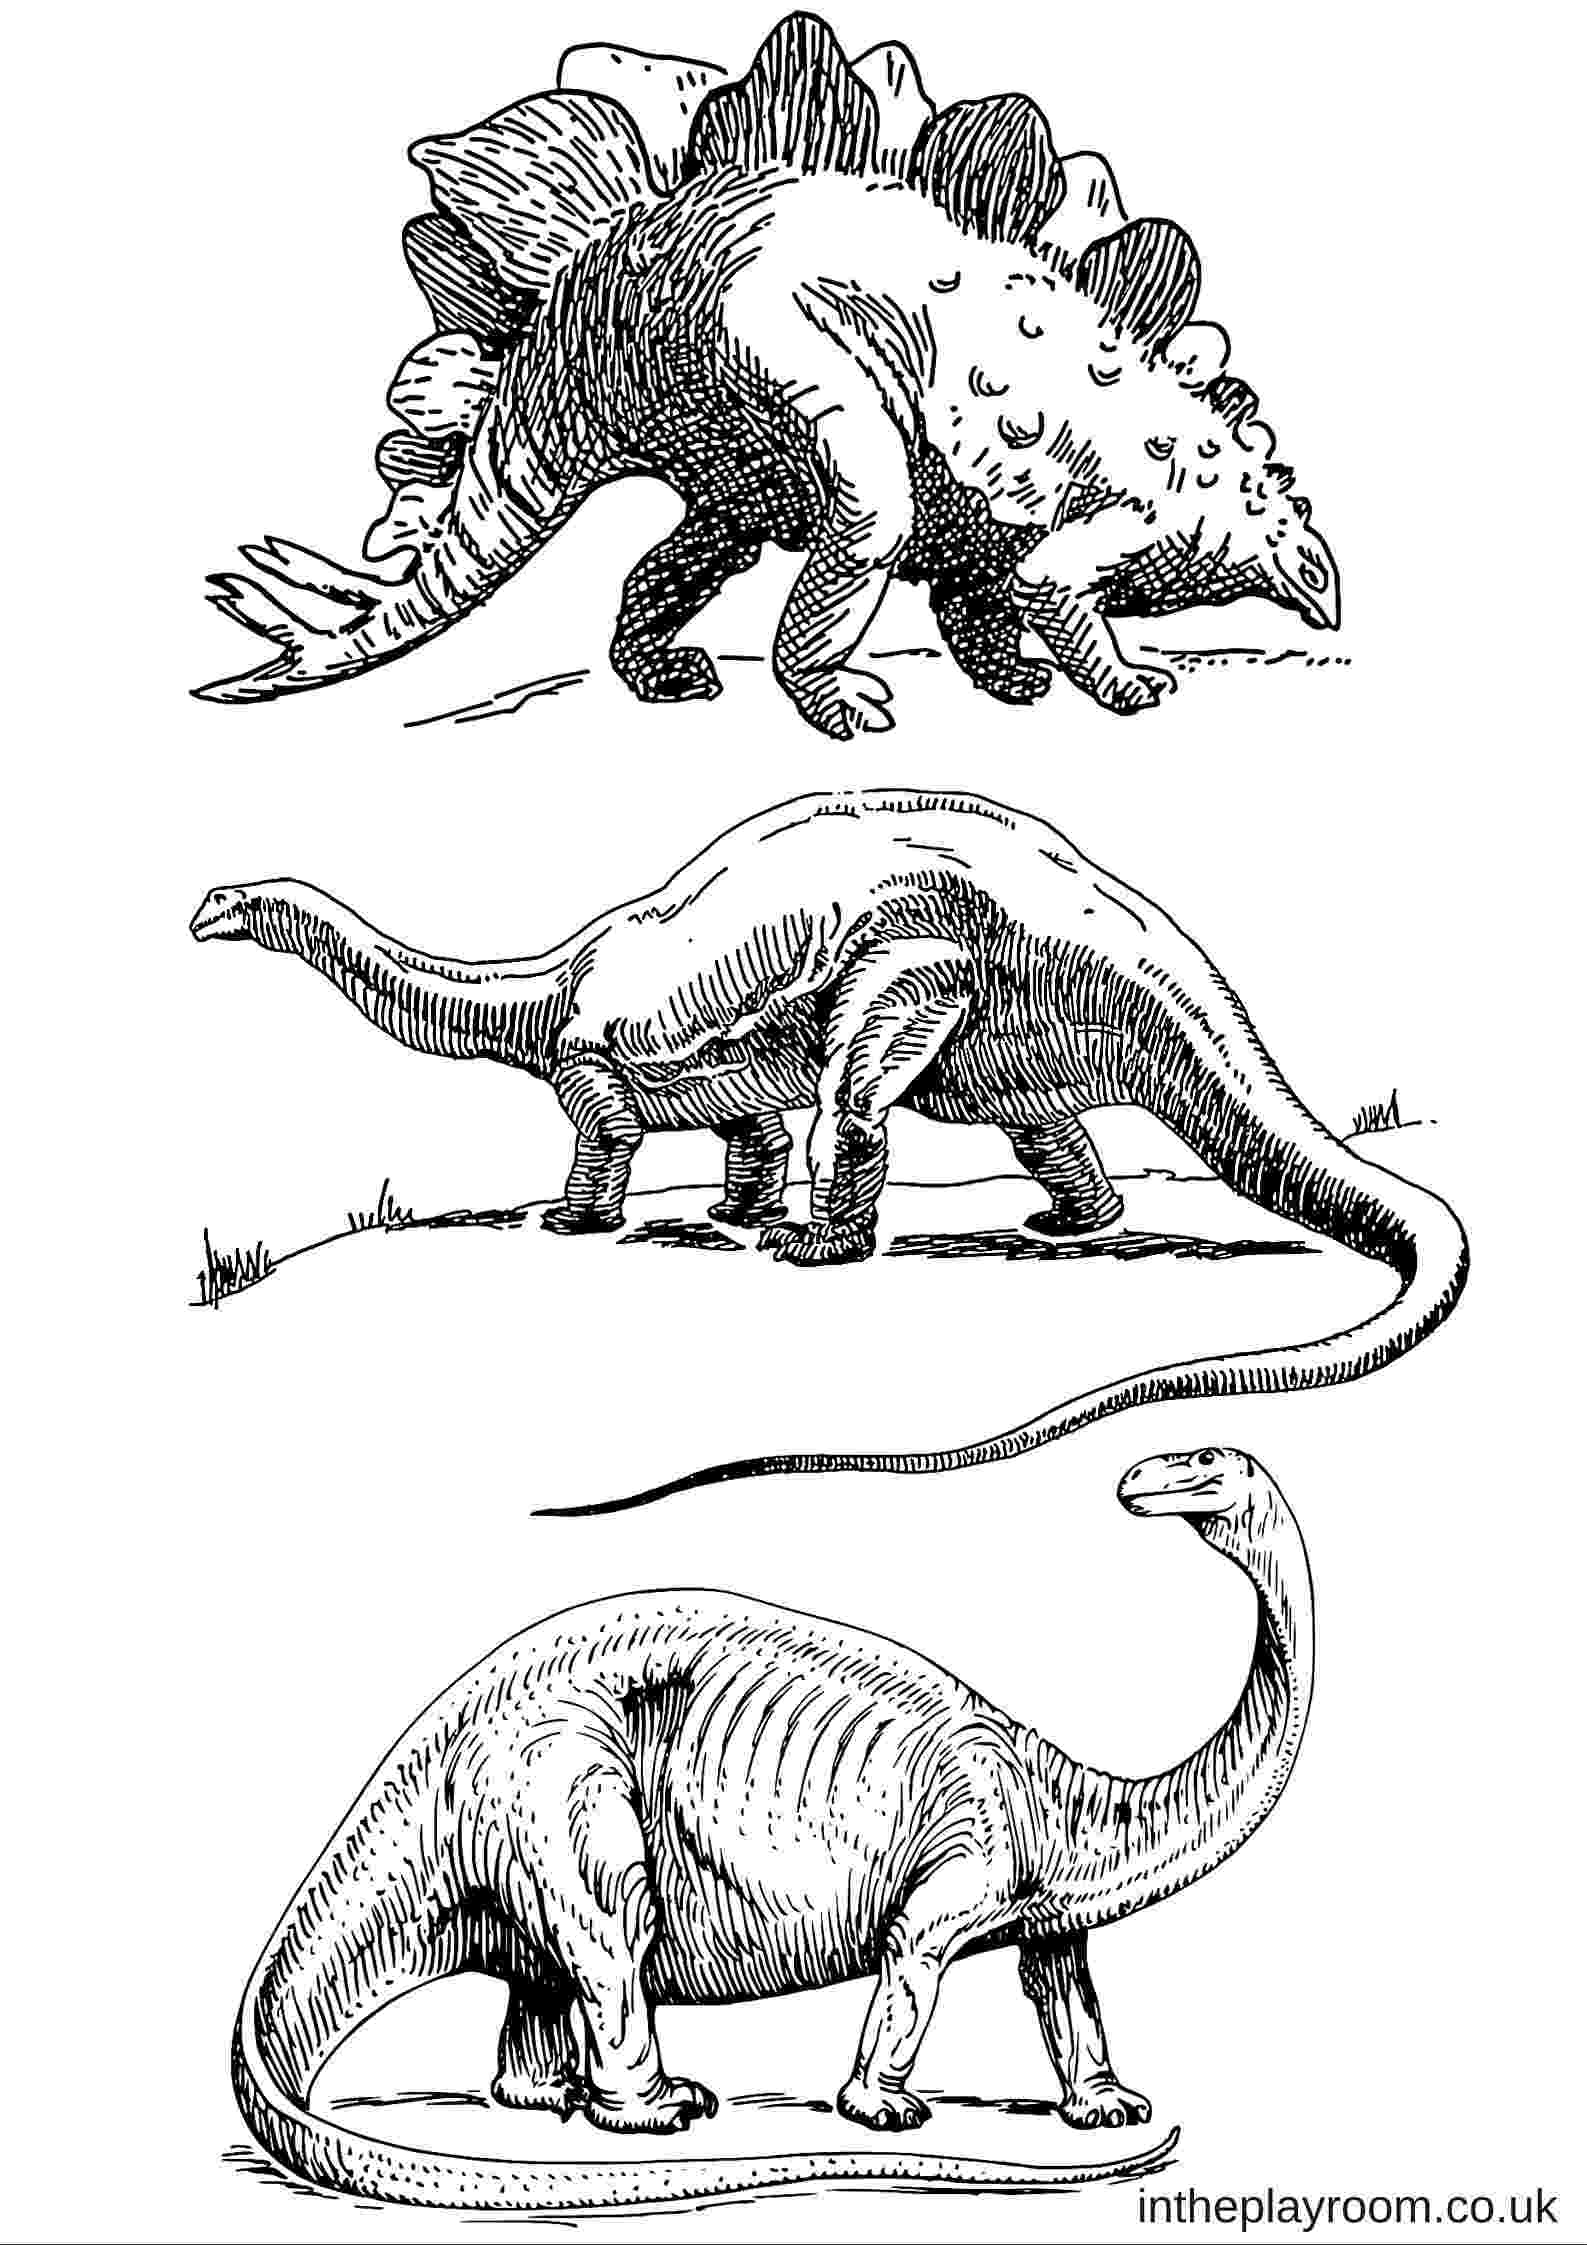 dinosaurs pictures new dinosaur rises from fossil bones in india pictures dinosaurs